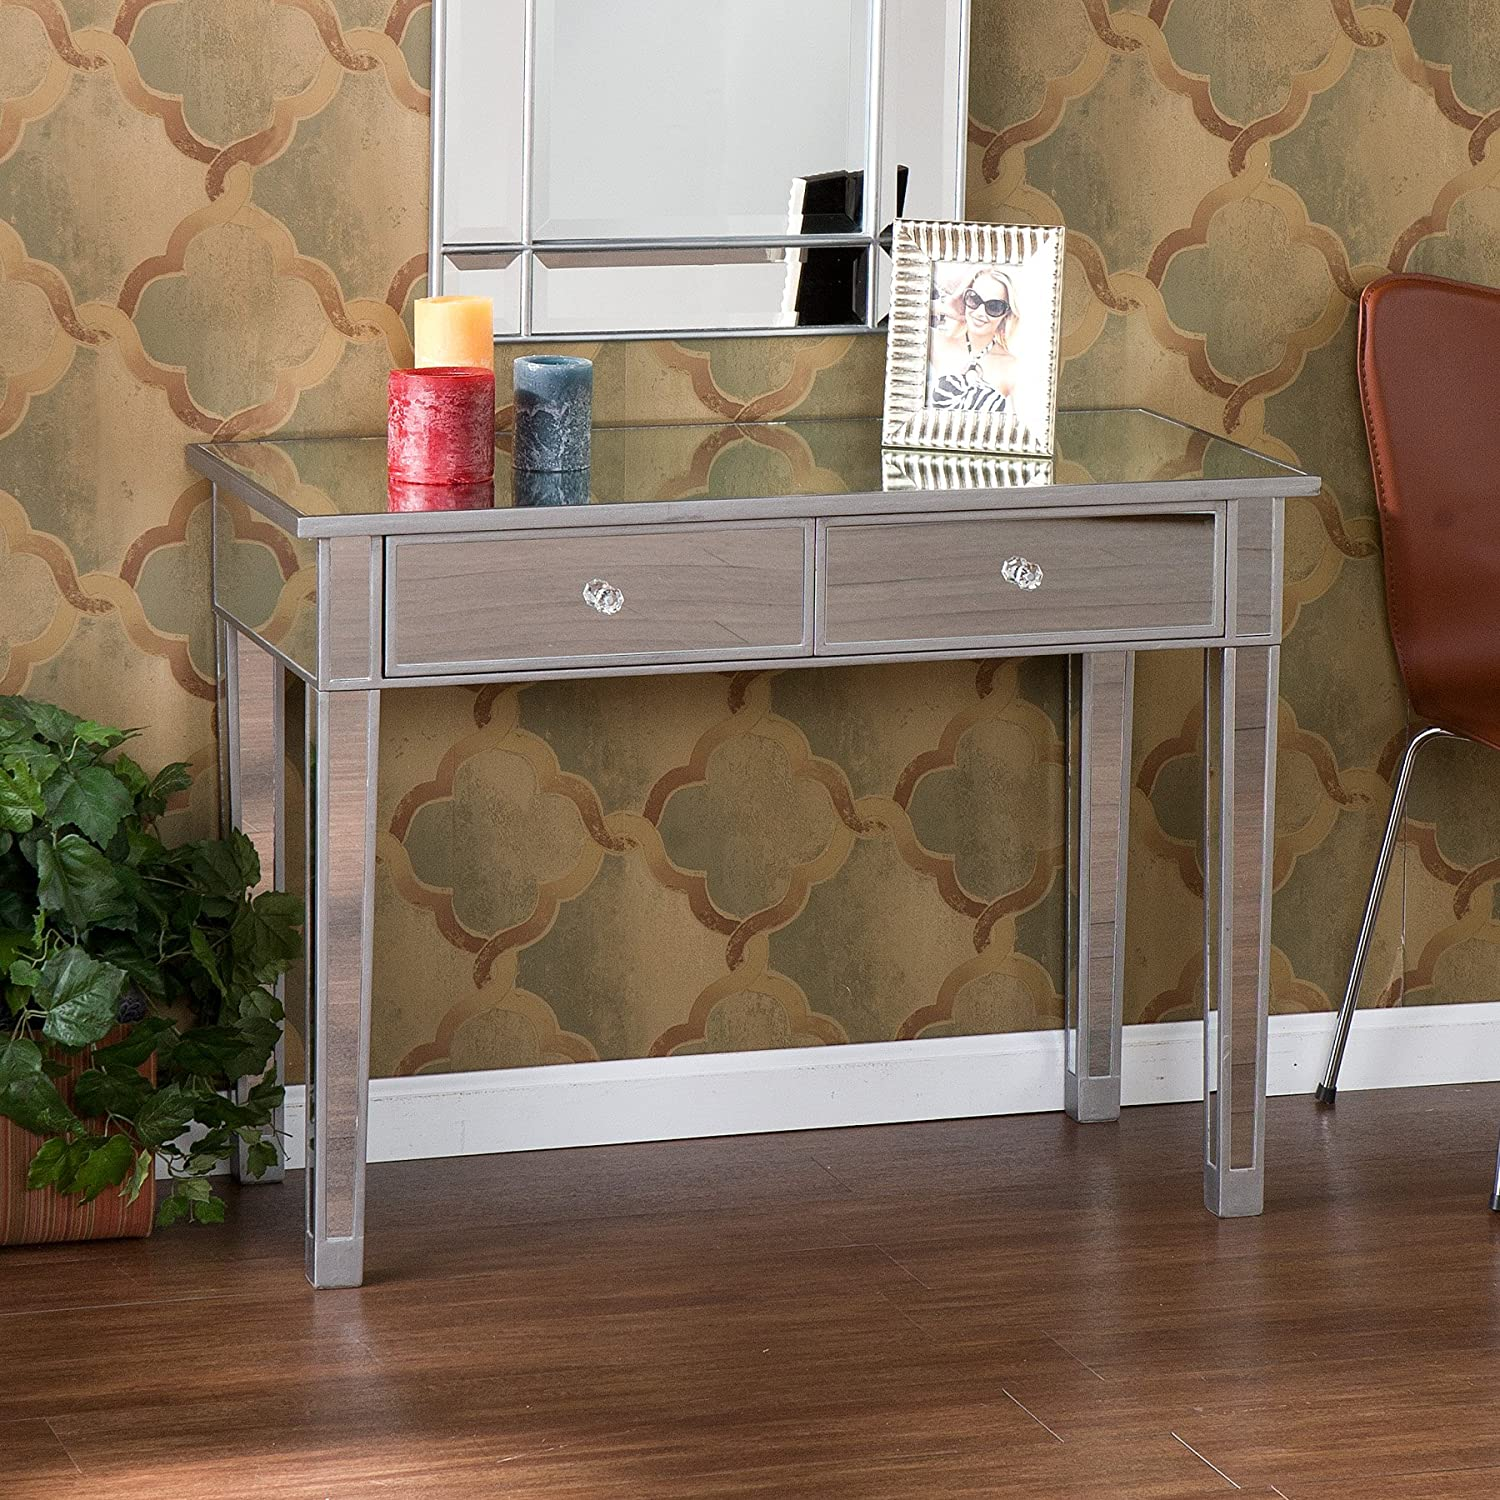 amazoncom southern enterprises mirage mirrored  drawer media  - amazoncom southern enterprises mirage mirrored  drawer media consoletable matte silver finish with faux crystal knobs kitchen  dining